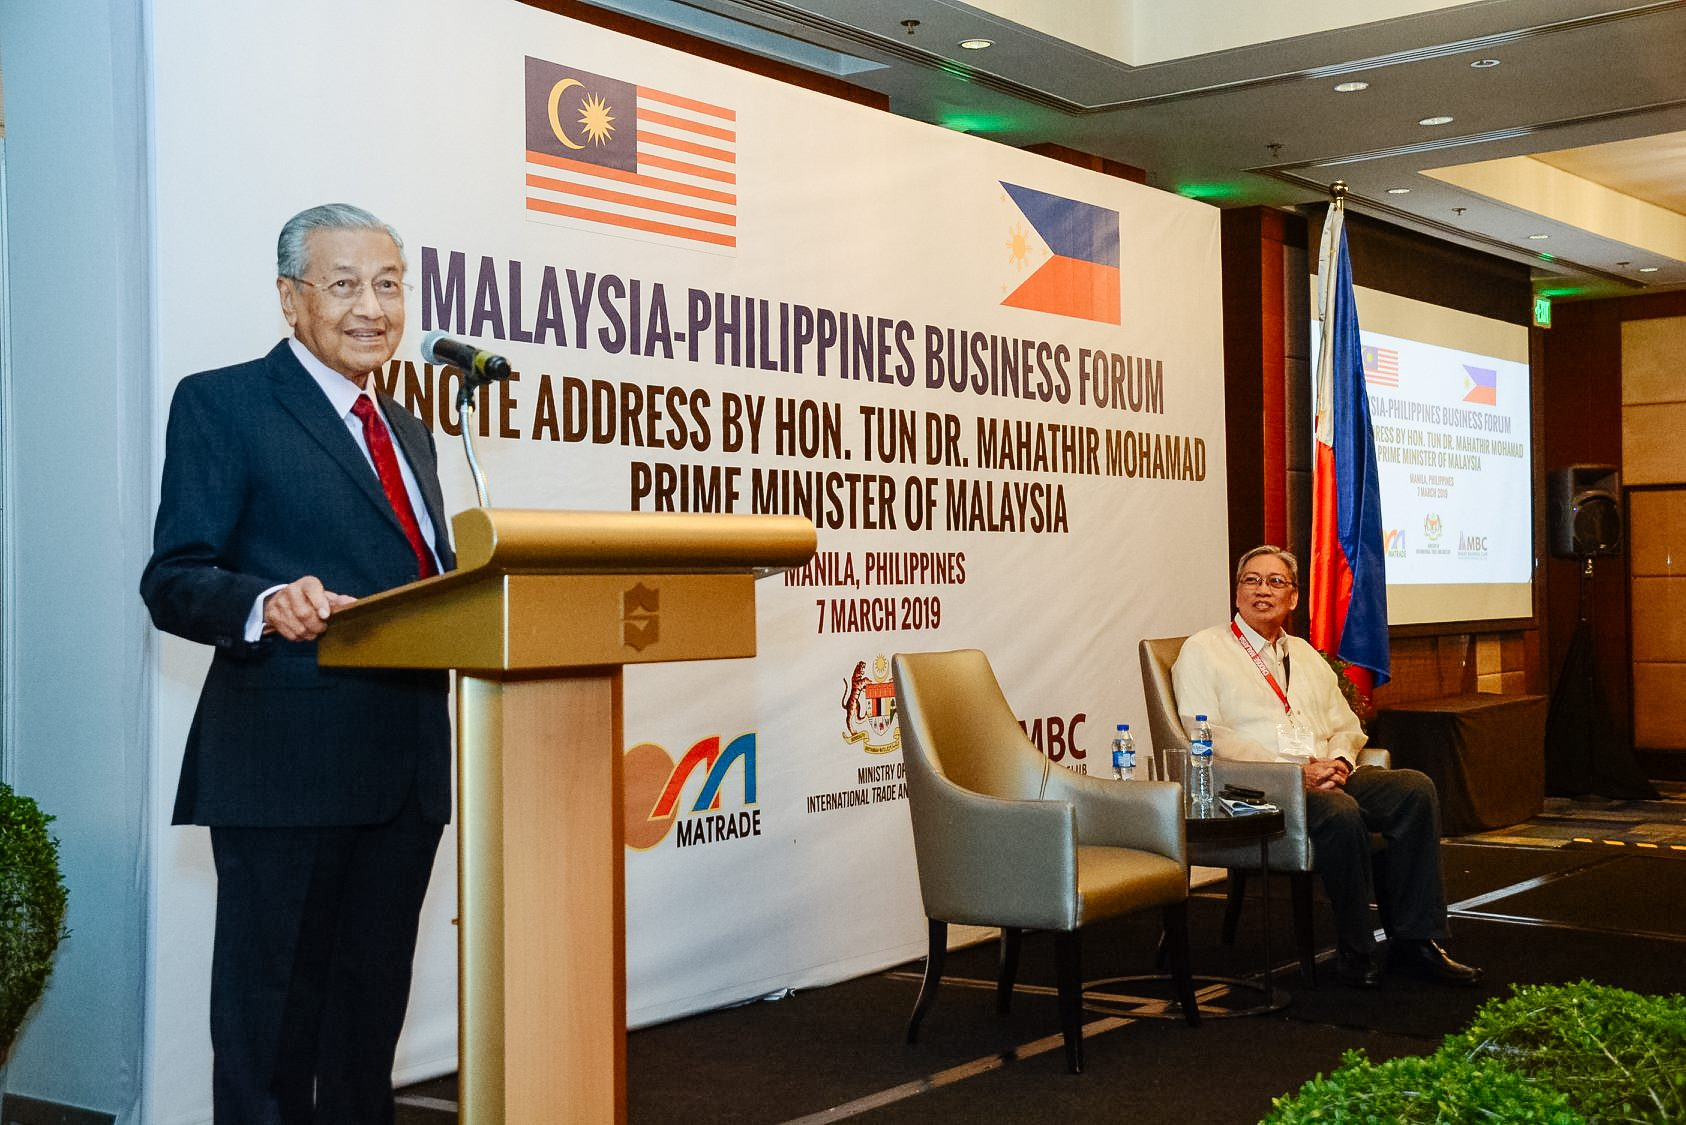 Roundtable Discussion with Malaysian Prime Minister Mahathir Mohammad on Malaysian-Philippine Business Partnership